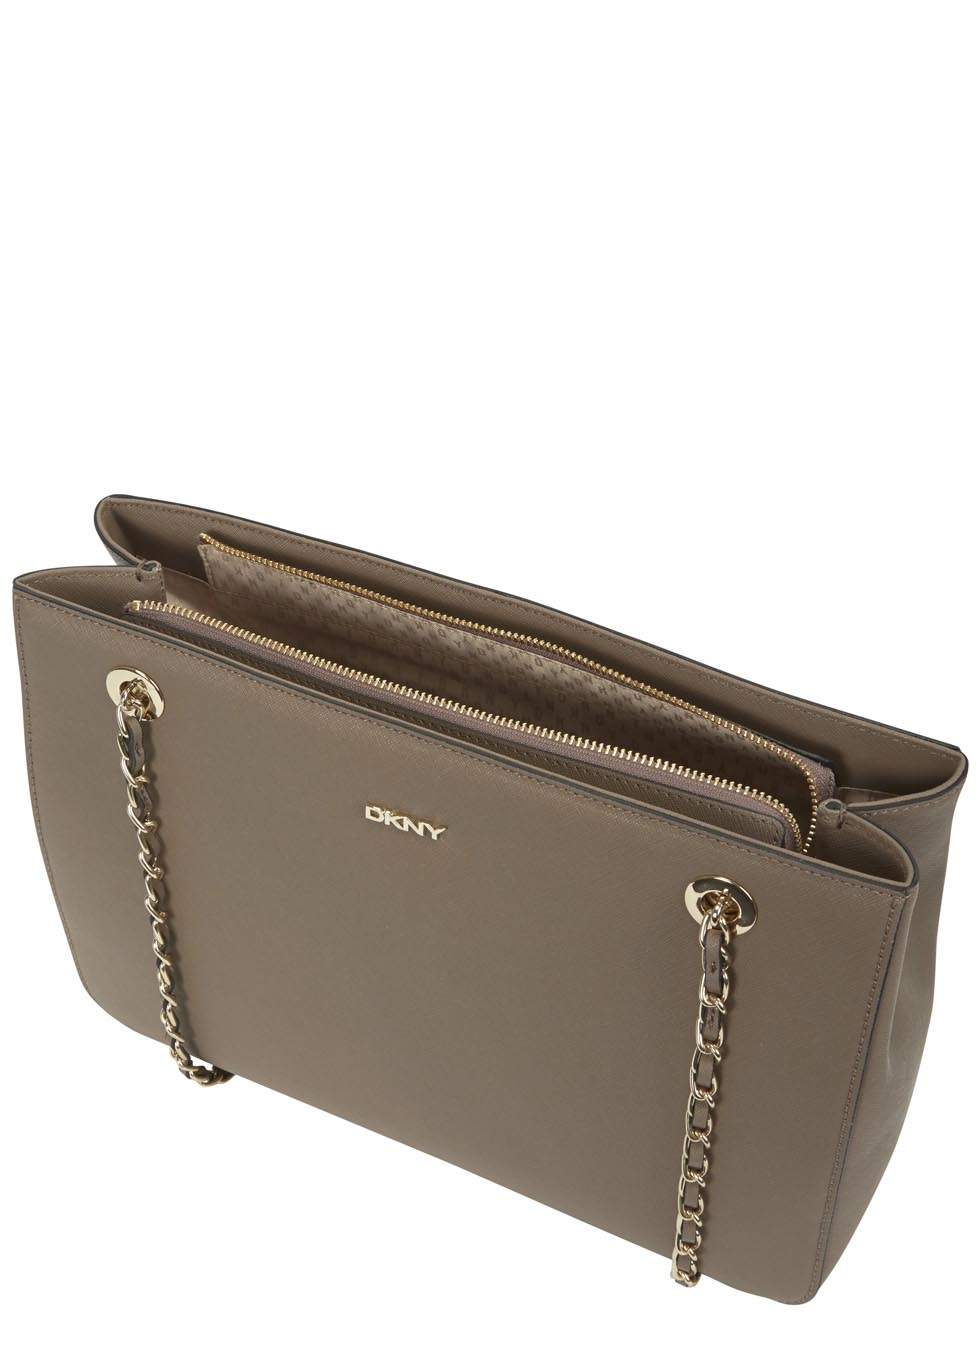 Dkny Bryant Park Taupe Shoulder Bag in Gray | Lyst